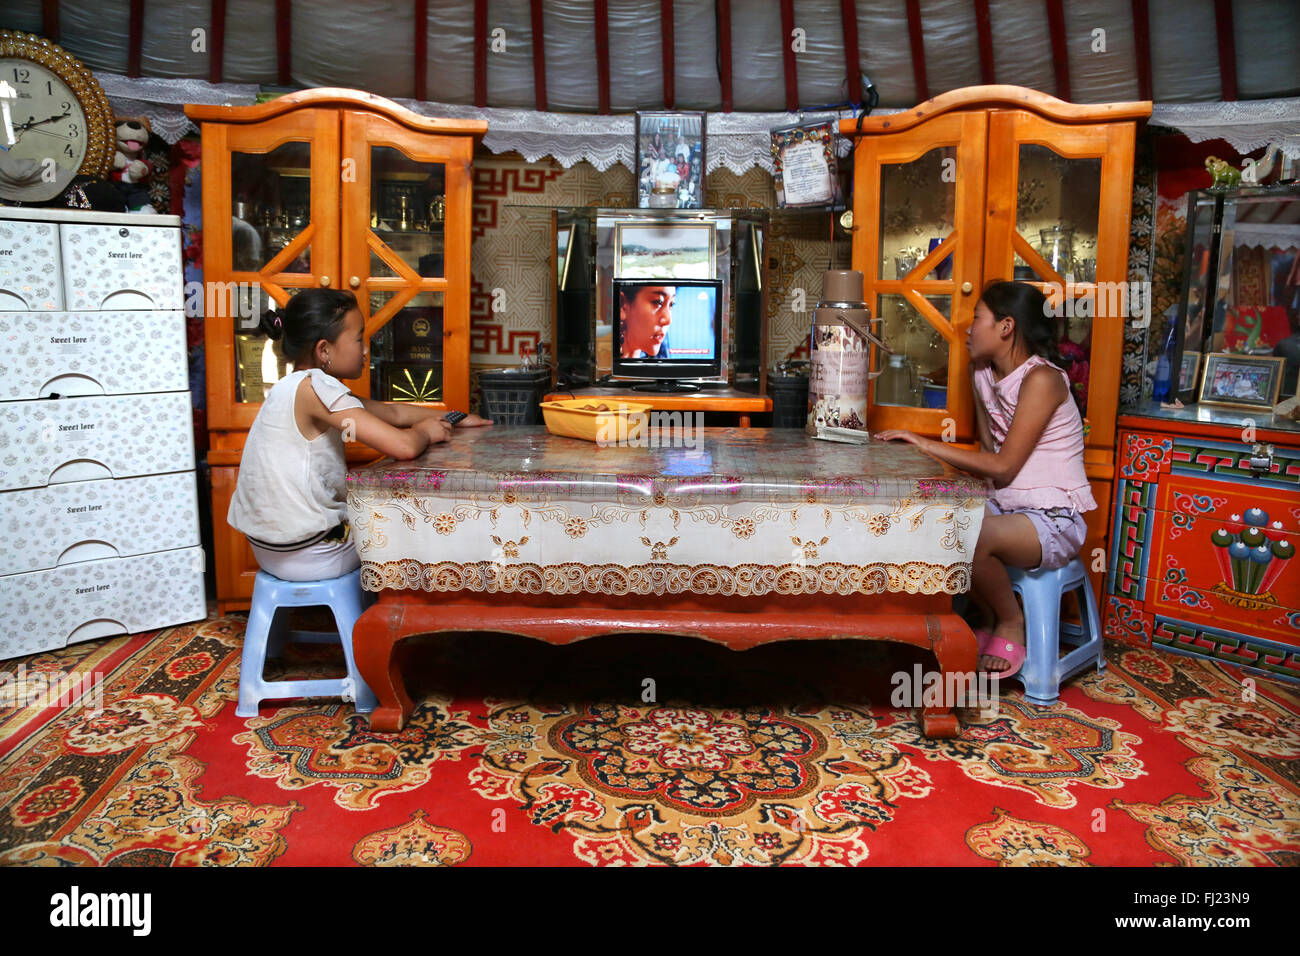 Two young girls are watching TV in a traditional home called ger or yurt in Mongolia - Stock Image